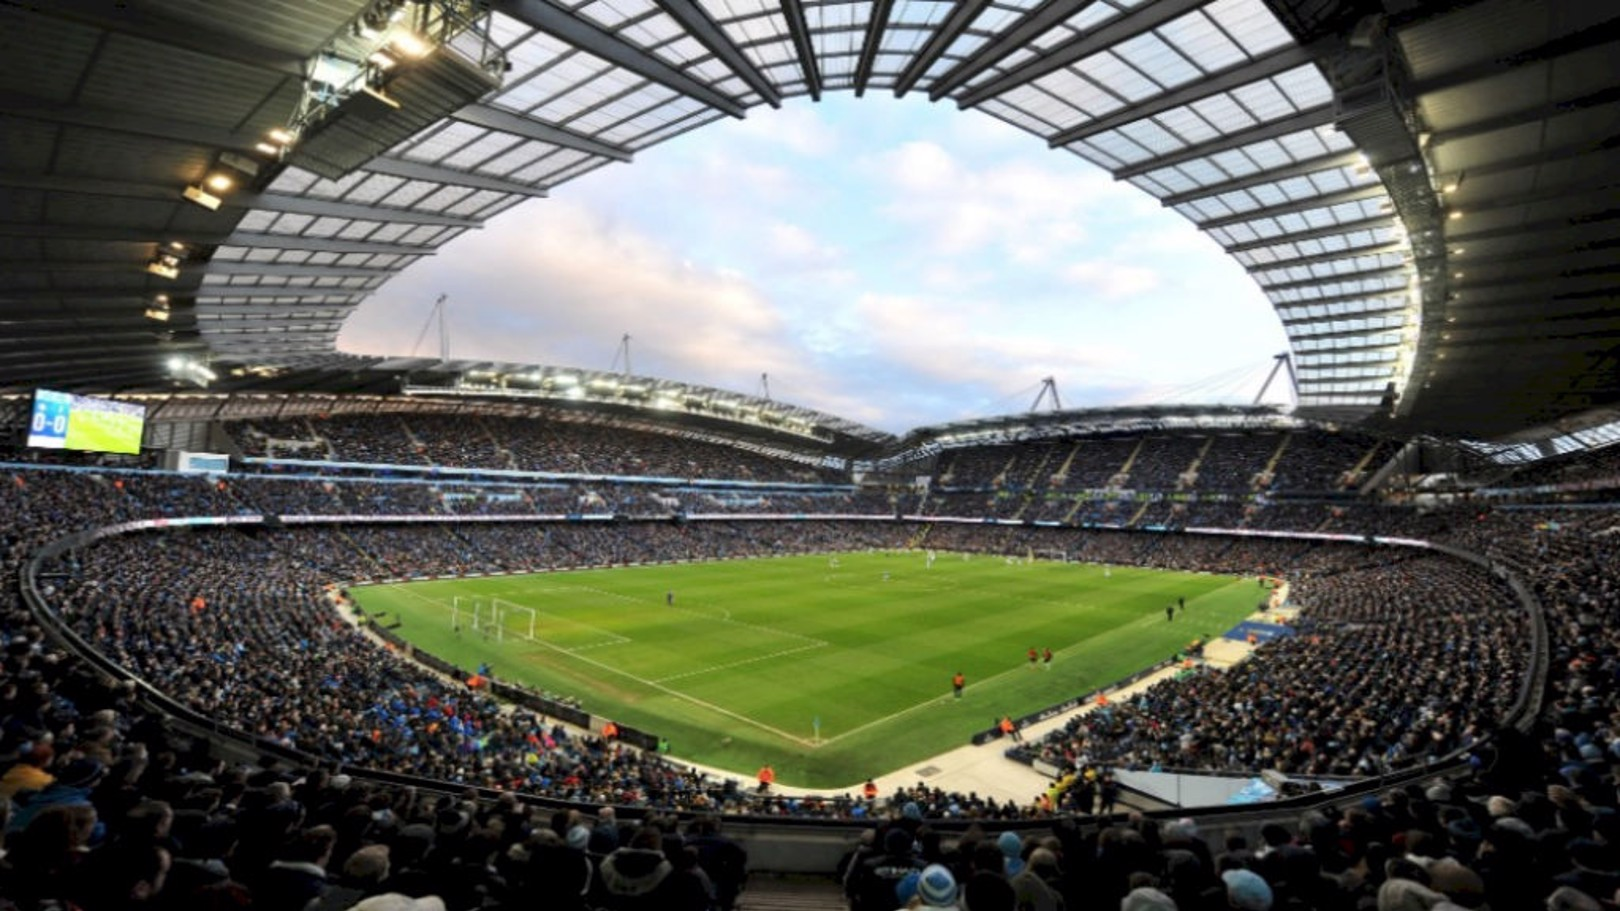 City Football Group's Start-Up challenge